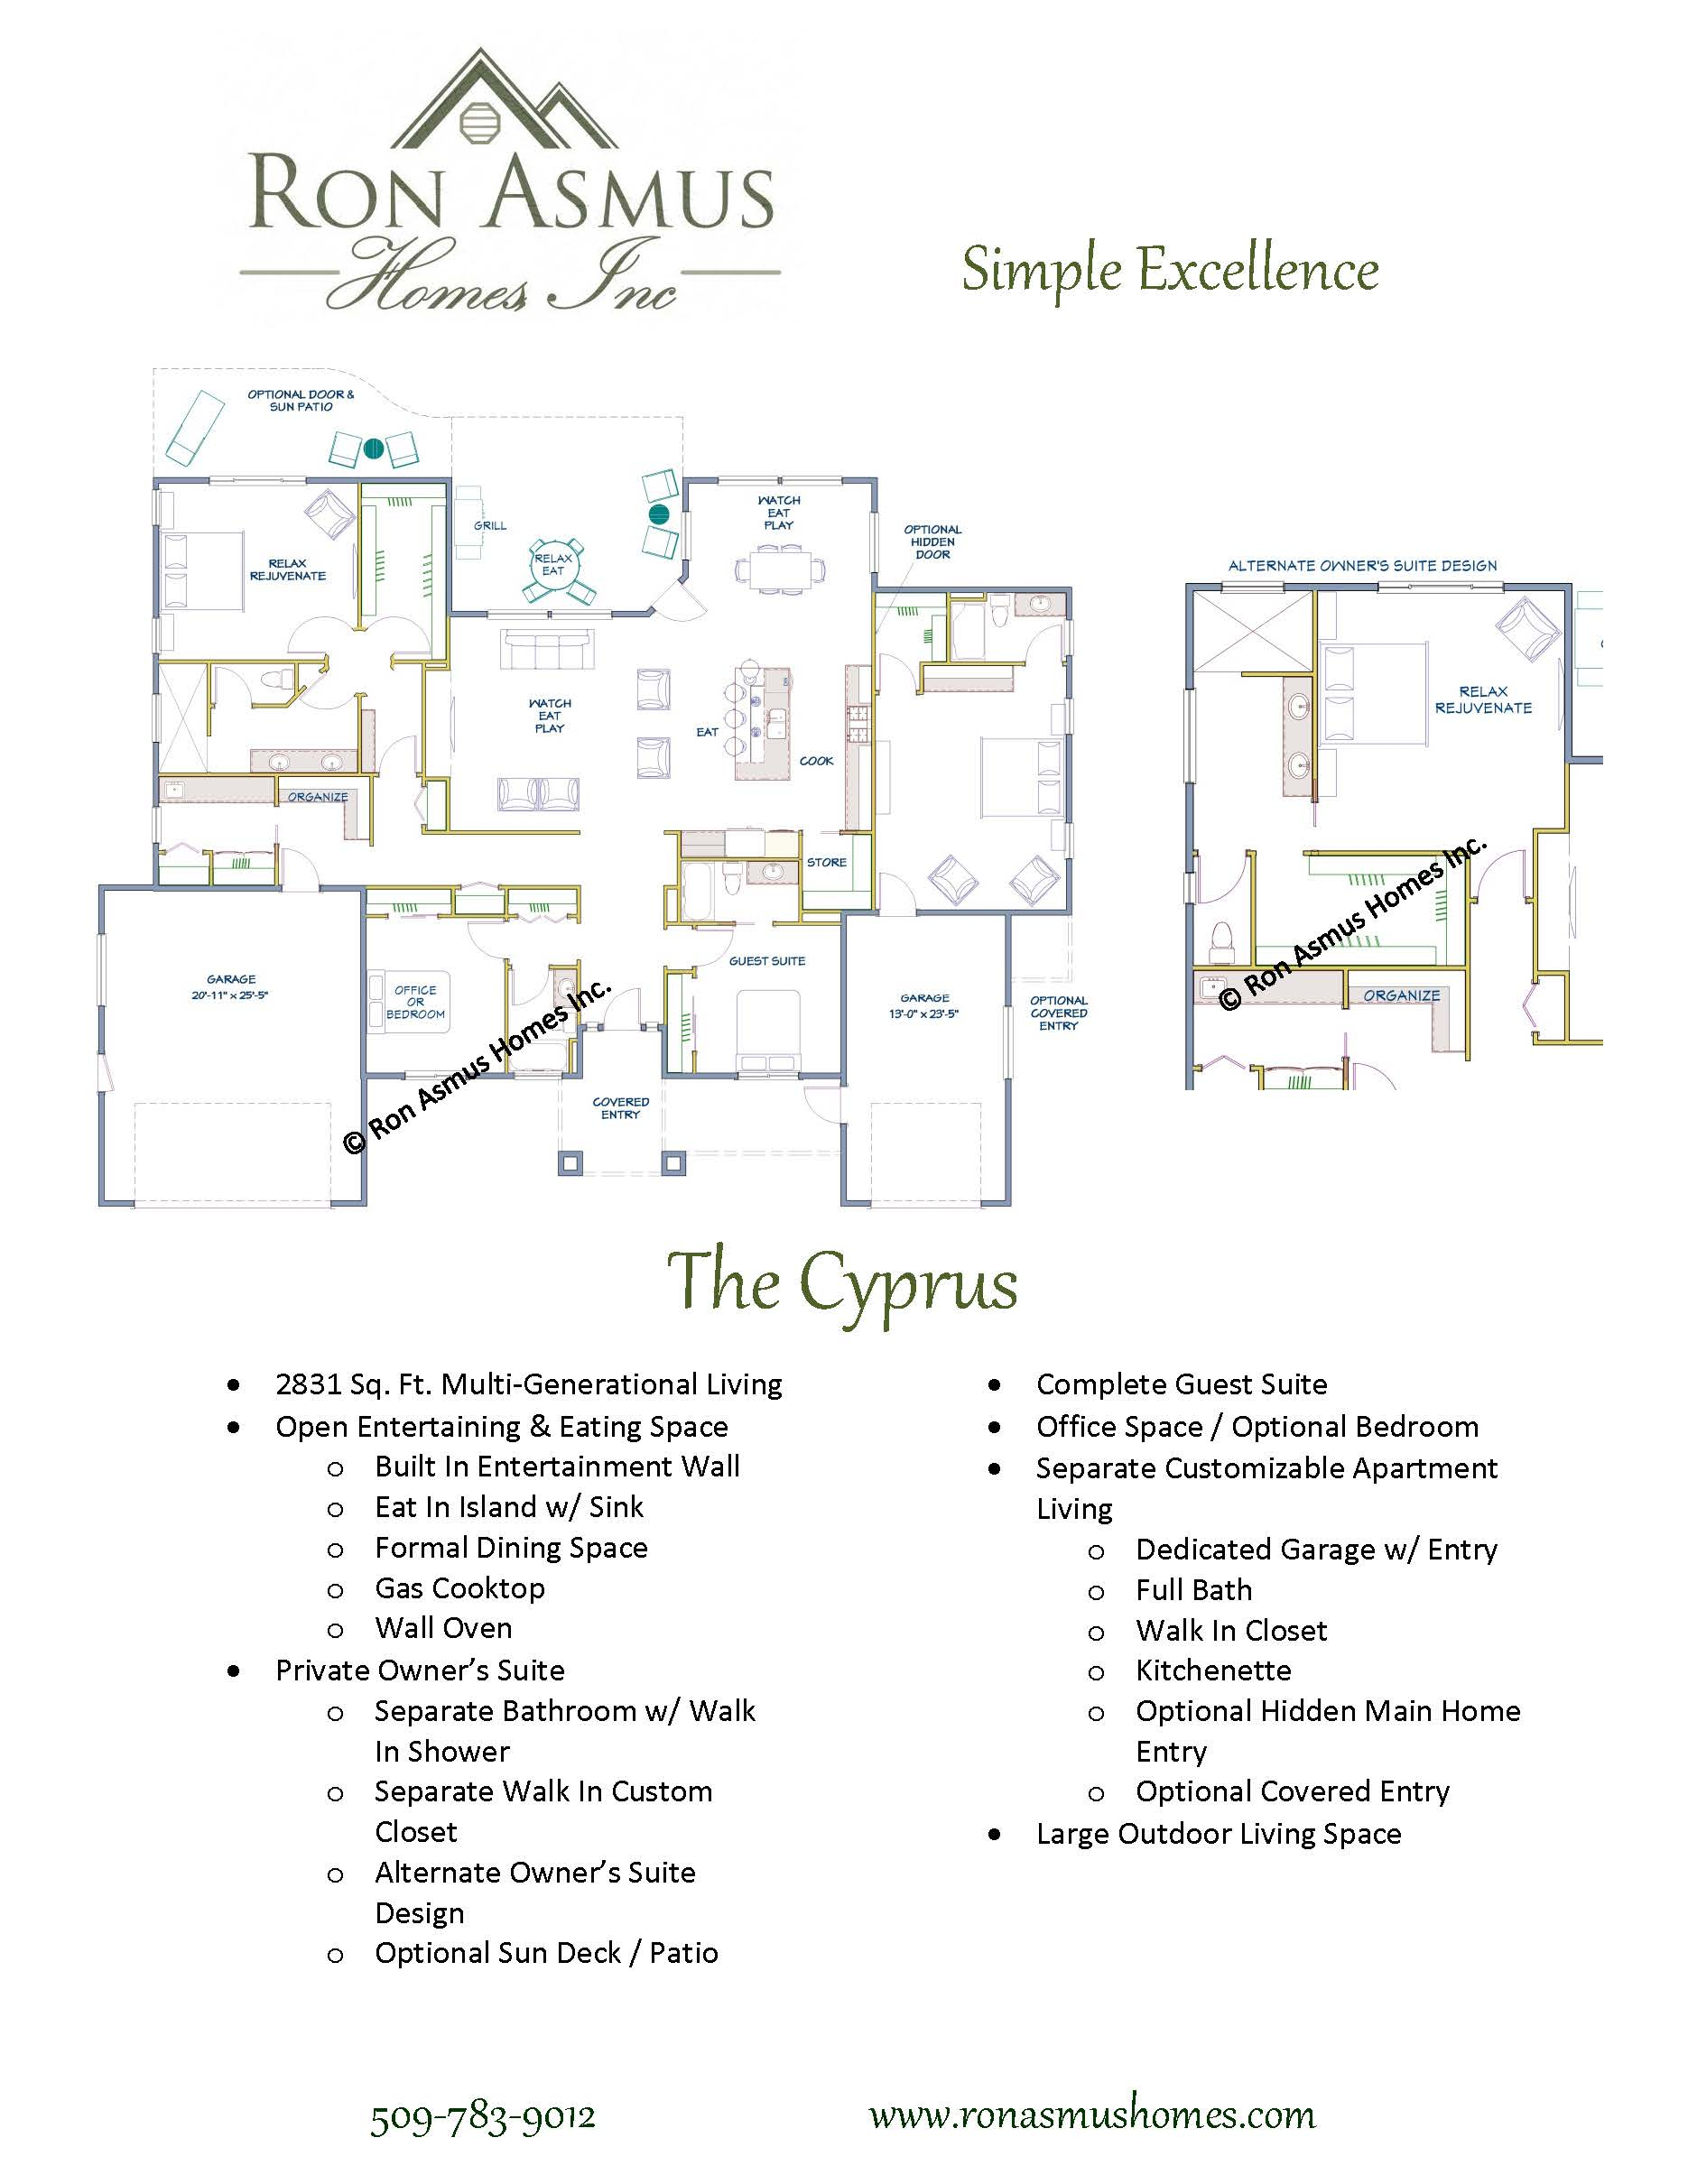 floor plans designs and layouts kennewick wa